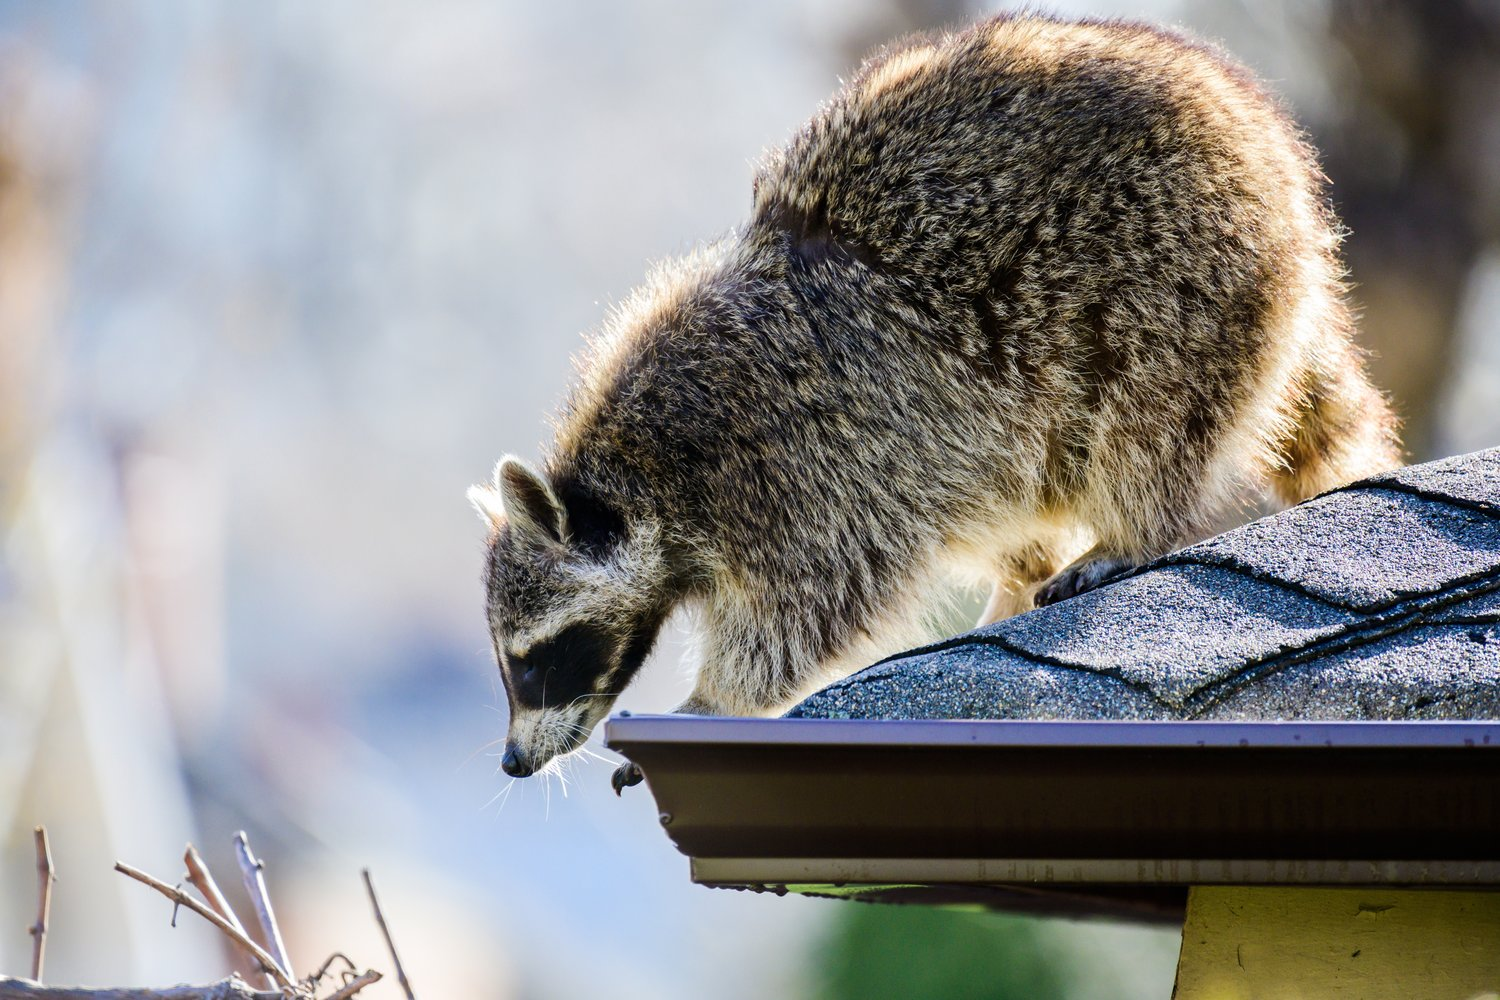 A raccoon on an urban rooftop. (Photo by Adam Muise)